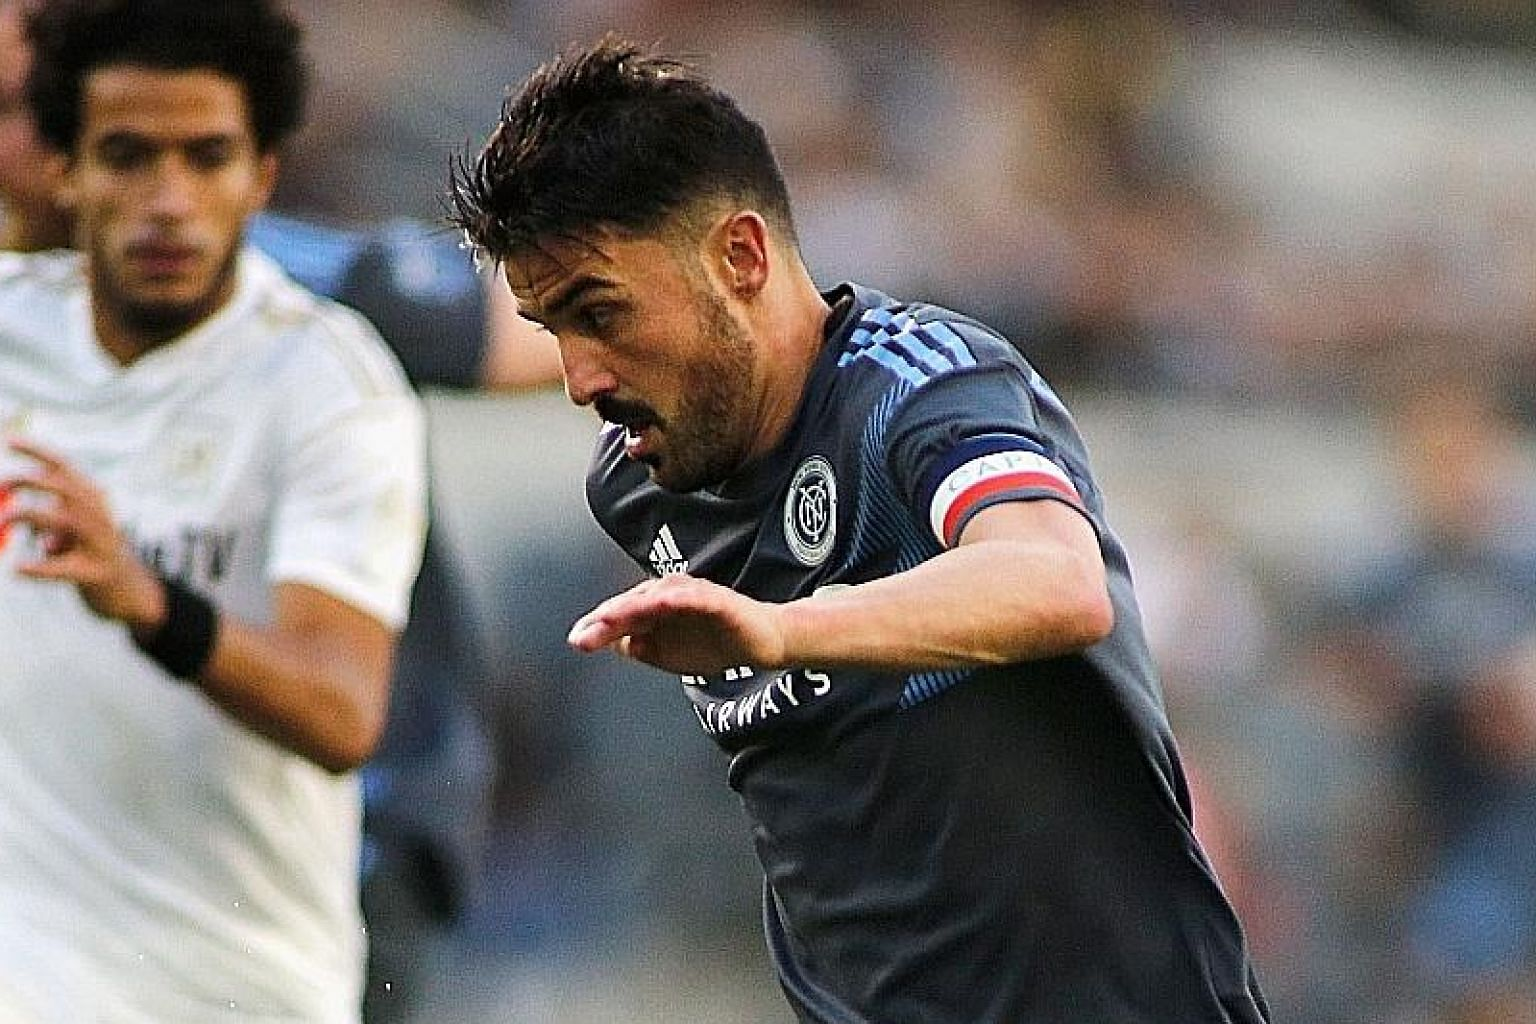 David Villa, seen here in action for New York City FC this month, has scored nine World Cup goals for Spain in 21 games. He was also a member of the Spanish side that won the 2010 World Cup.